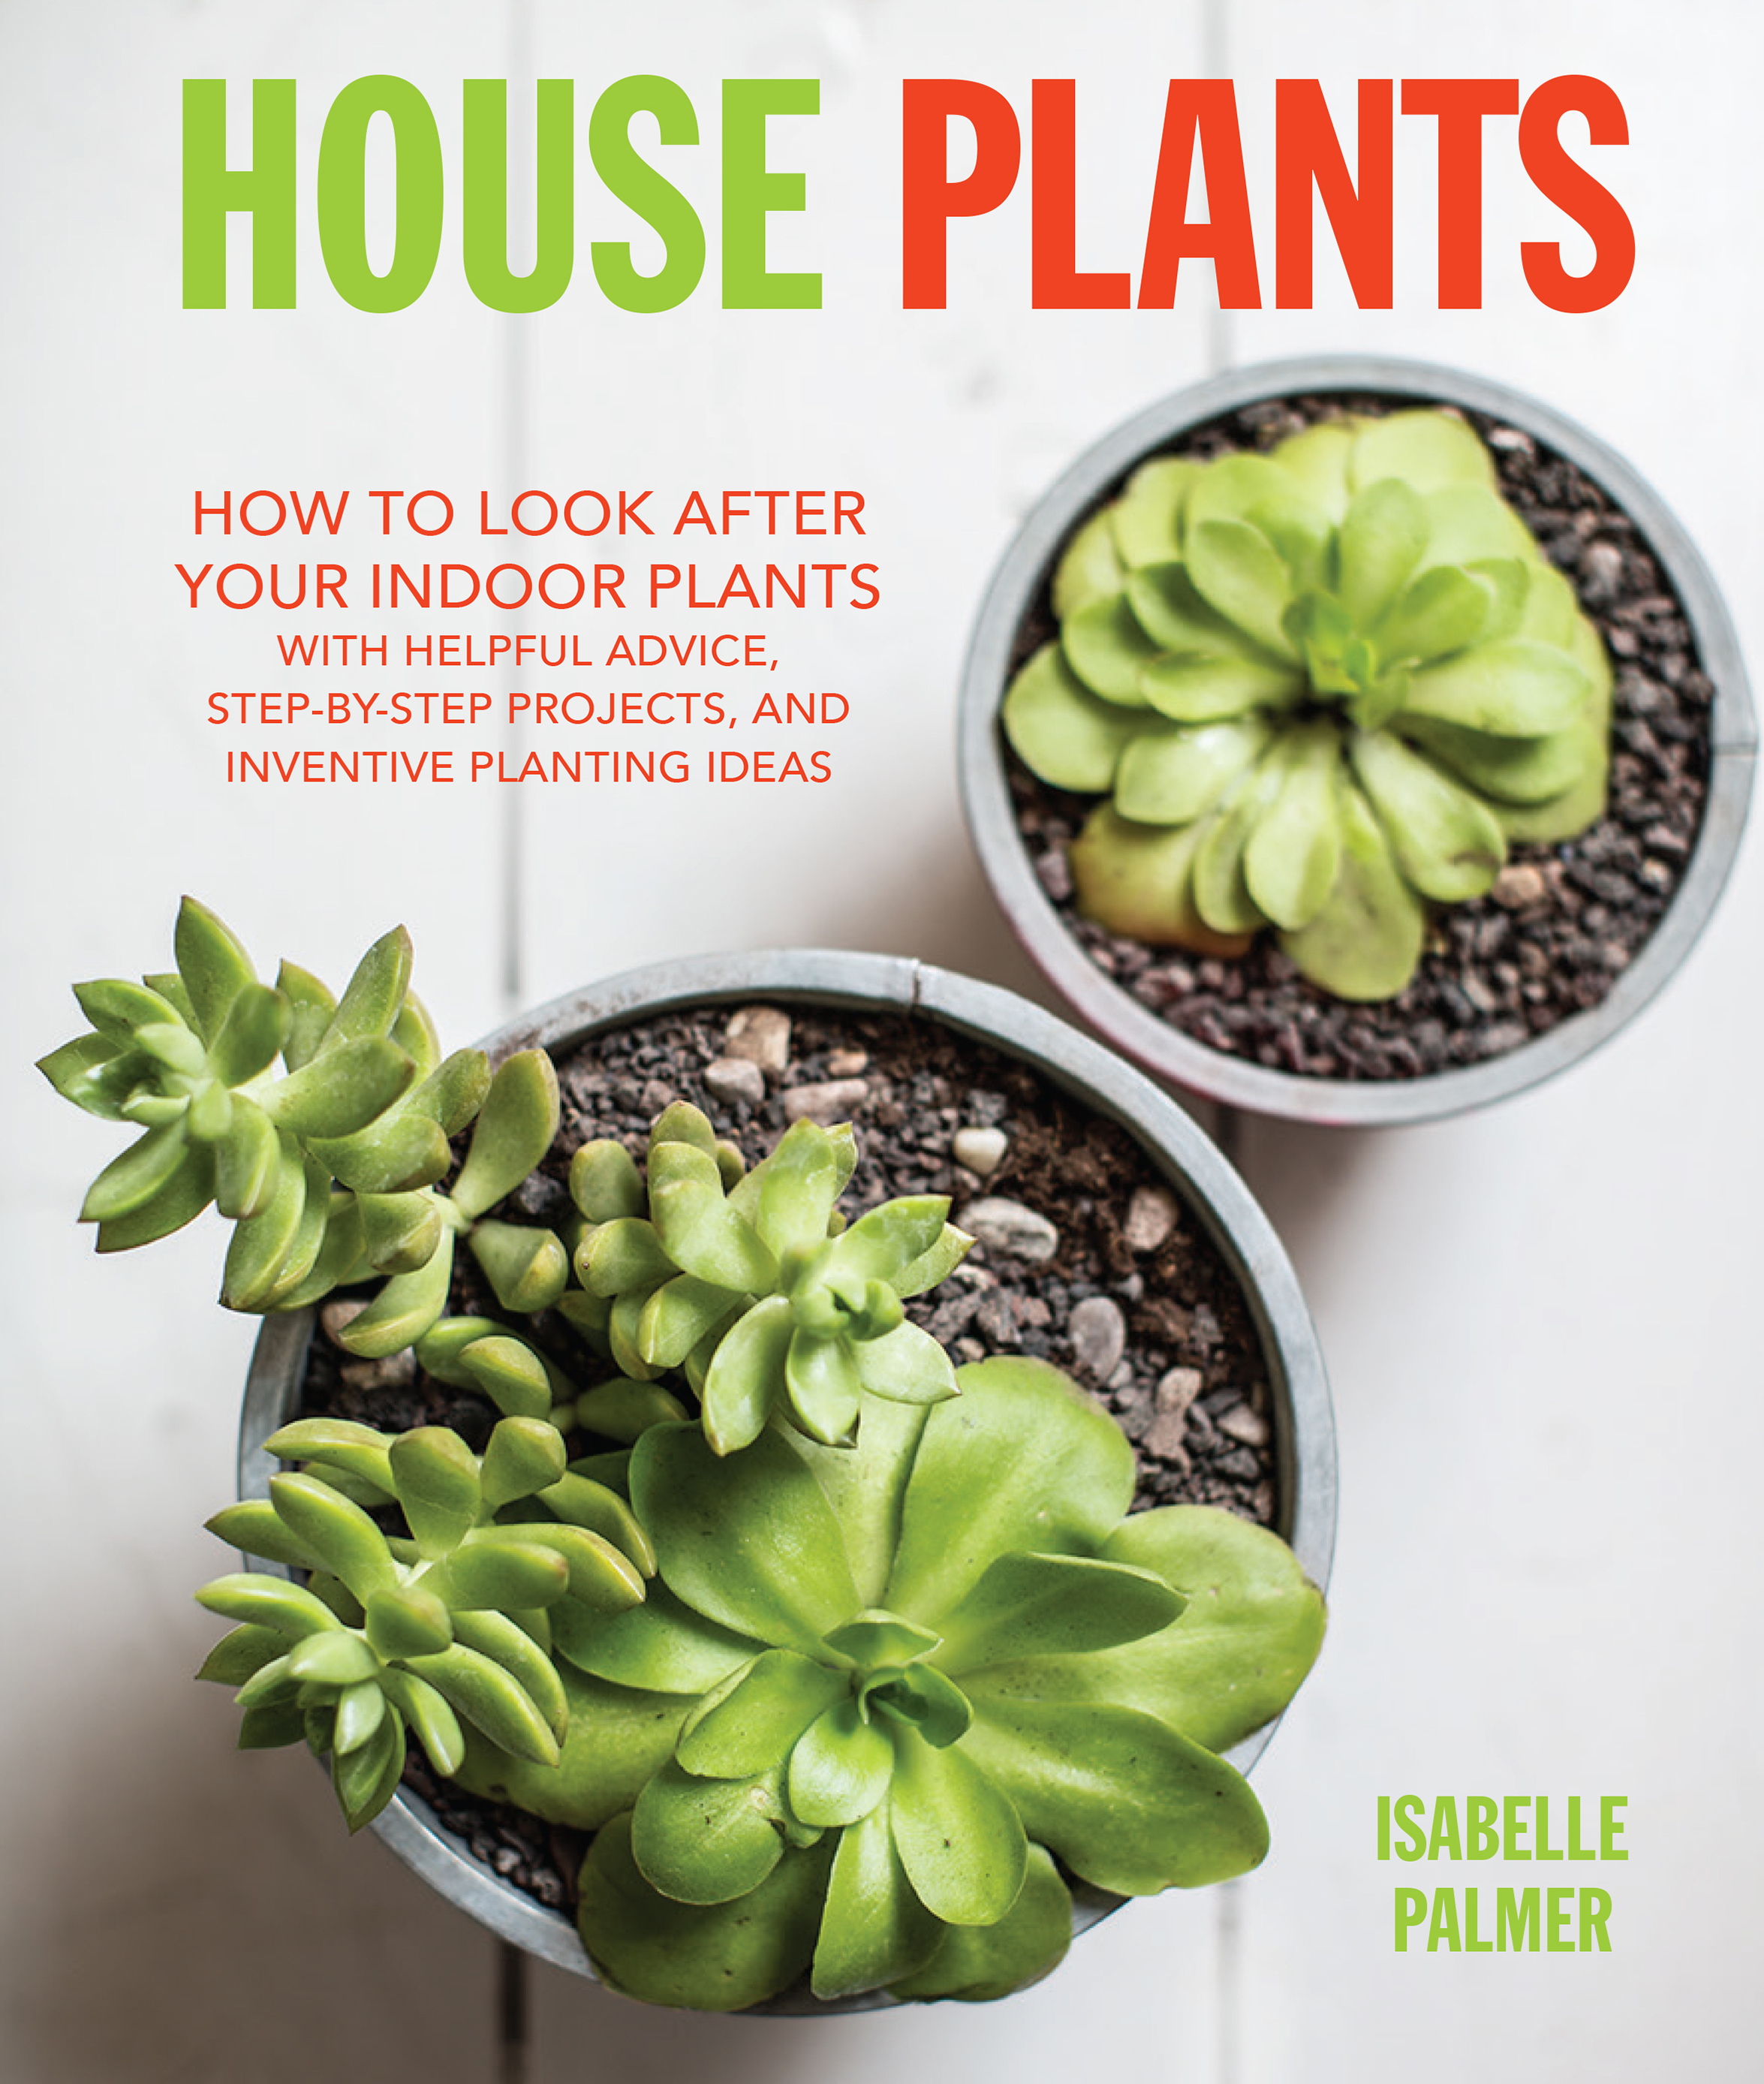 House Plants by Isabelle Palmer Littlegreenshed Blog